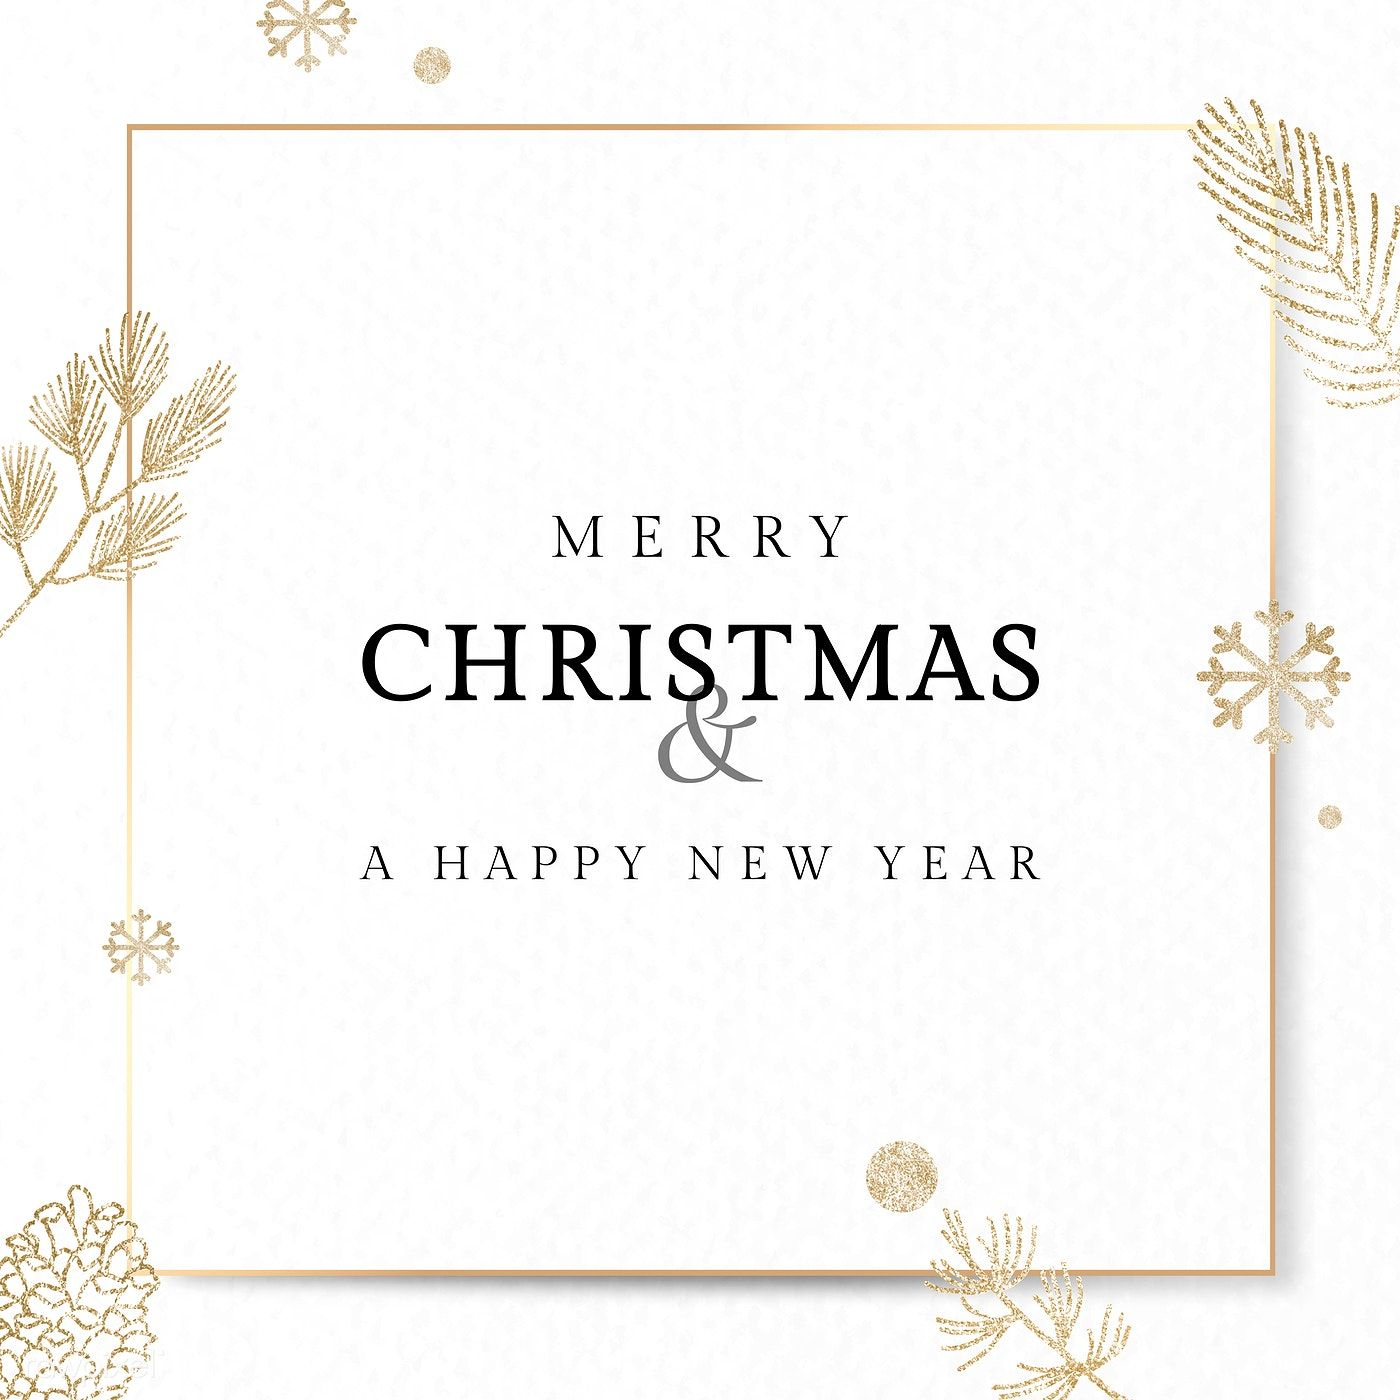 Christmas Gold Frame Social Ads Template Vector Premium Image By Rawpixel Com Aew Merry Christmas Card Greetings Christmas Card Template Gold Christmas